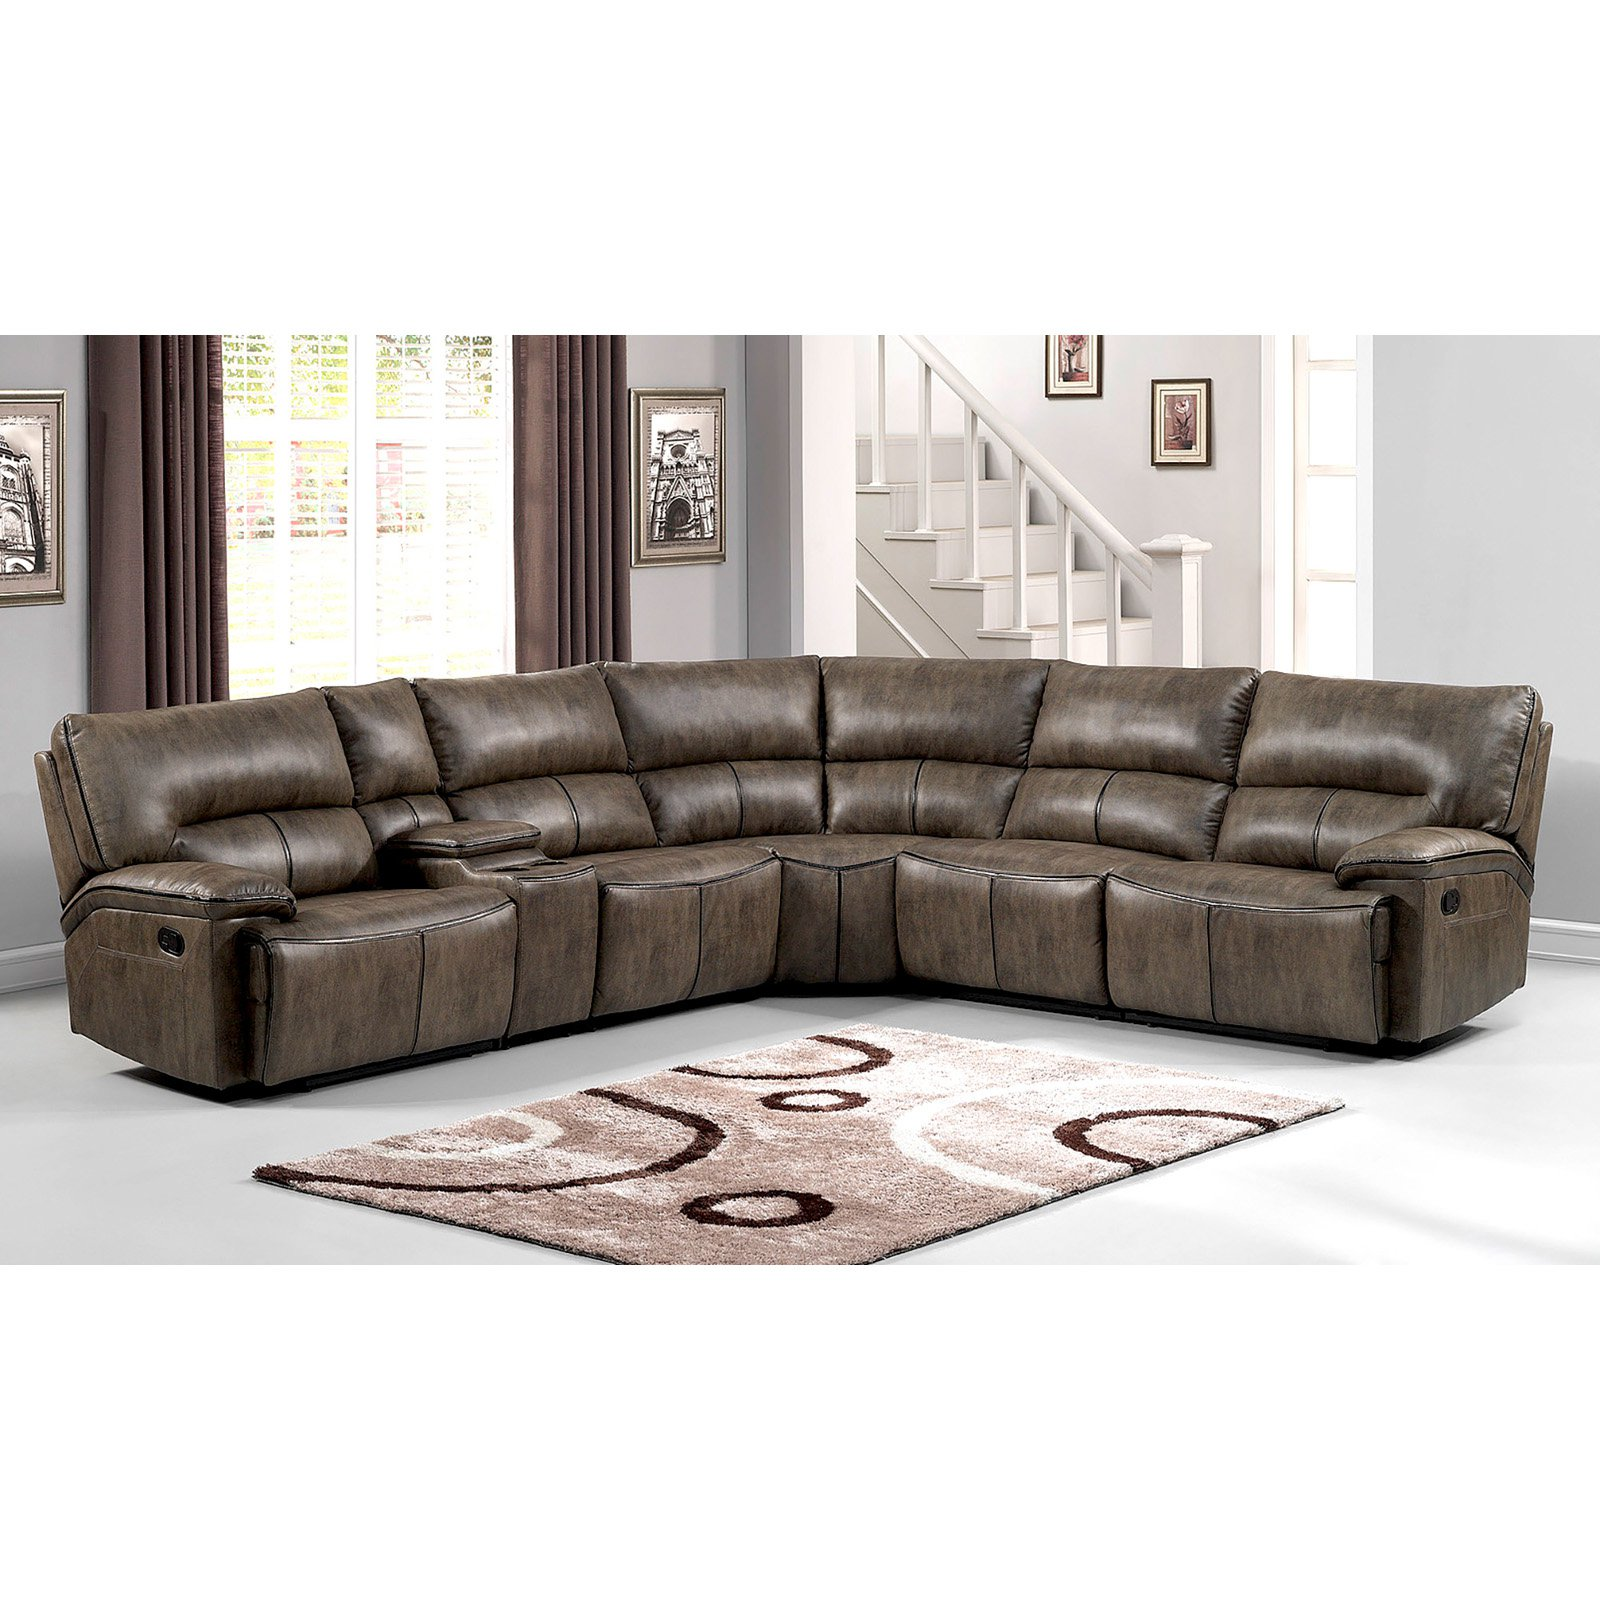 AC Pacific Donovan 6 Piece Sectional Sofa Set Walmart